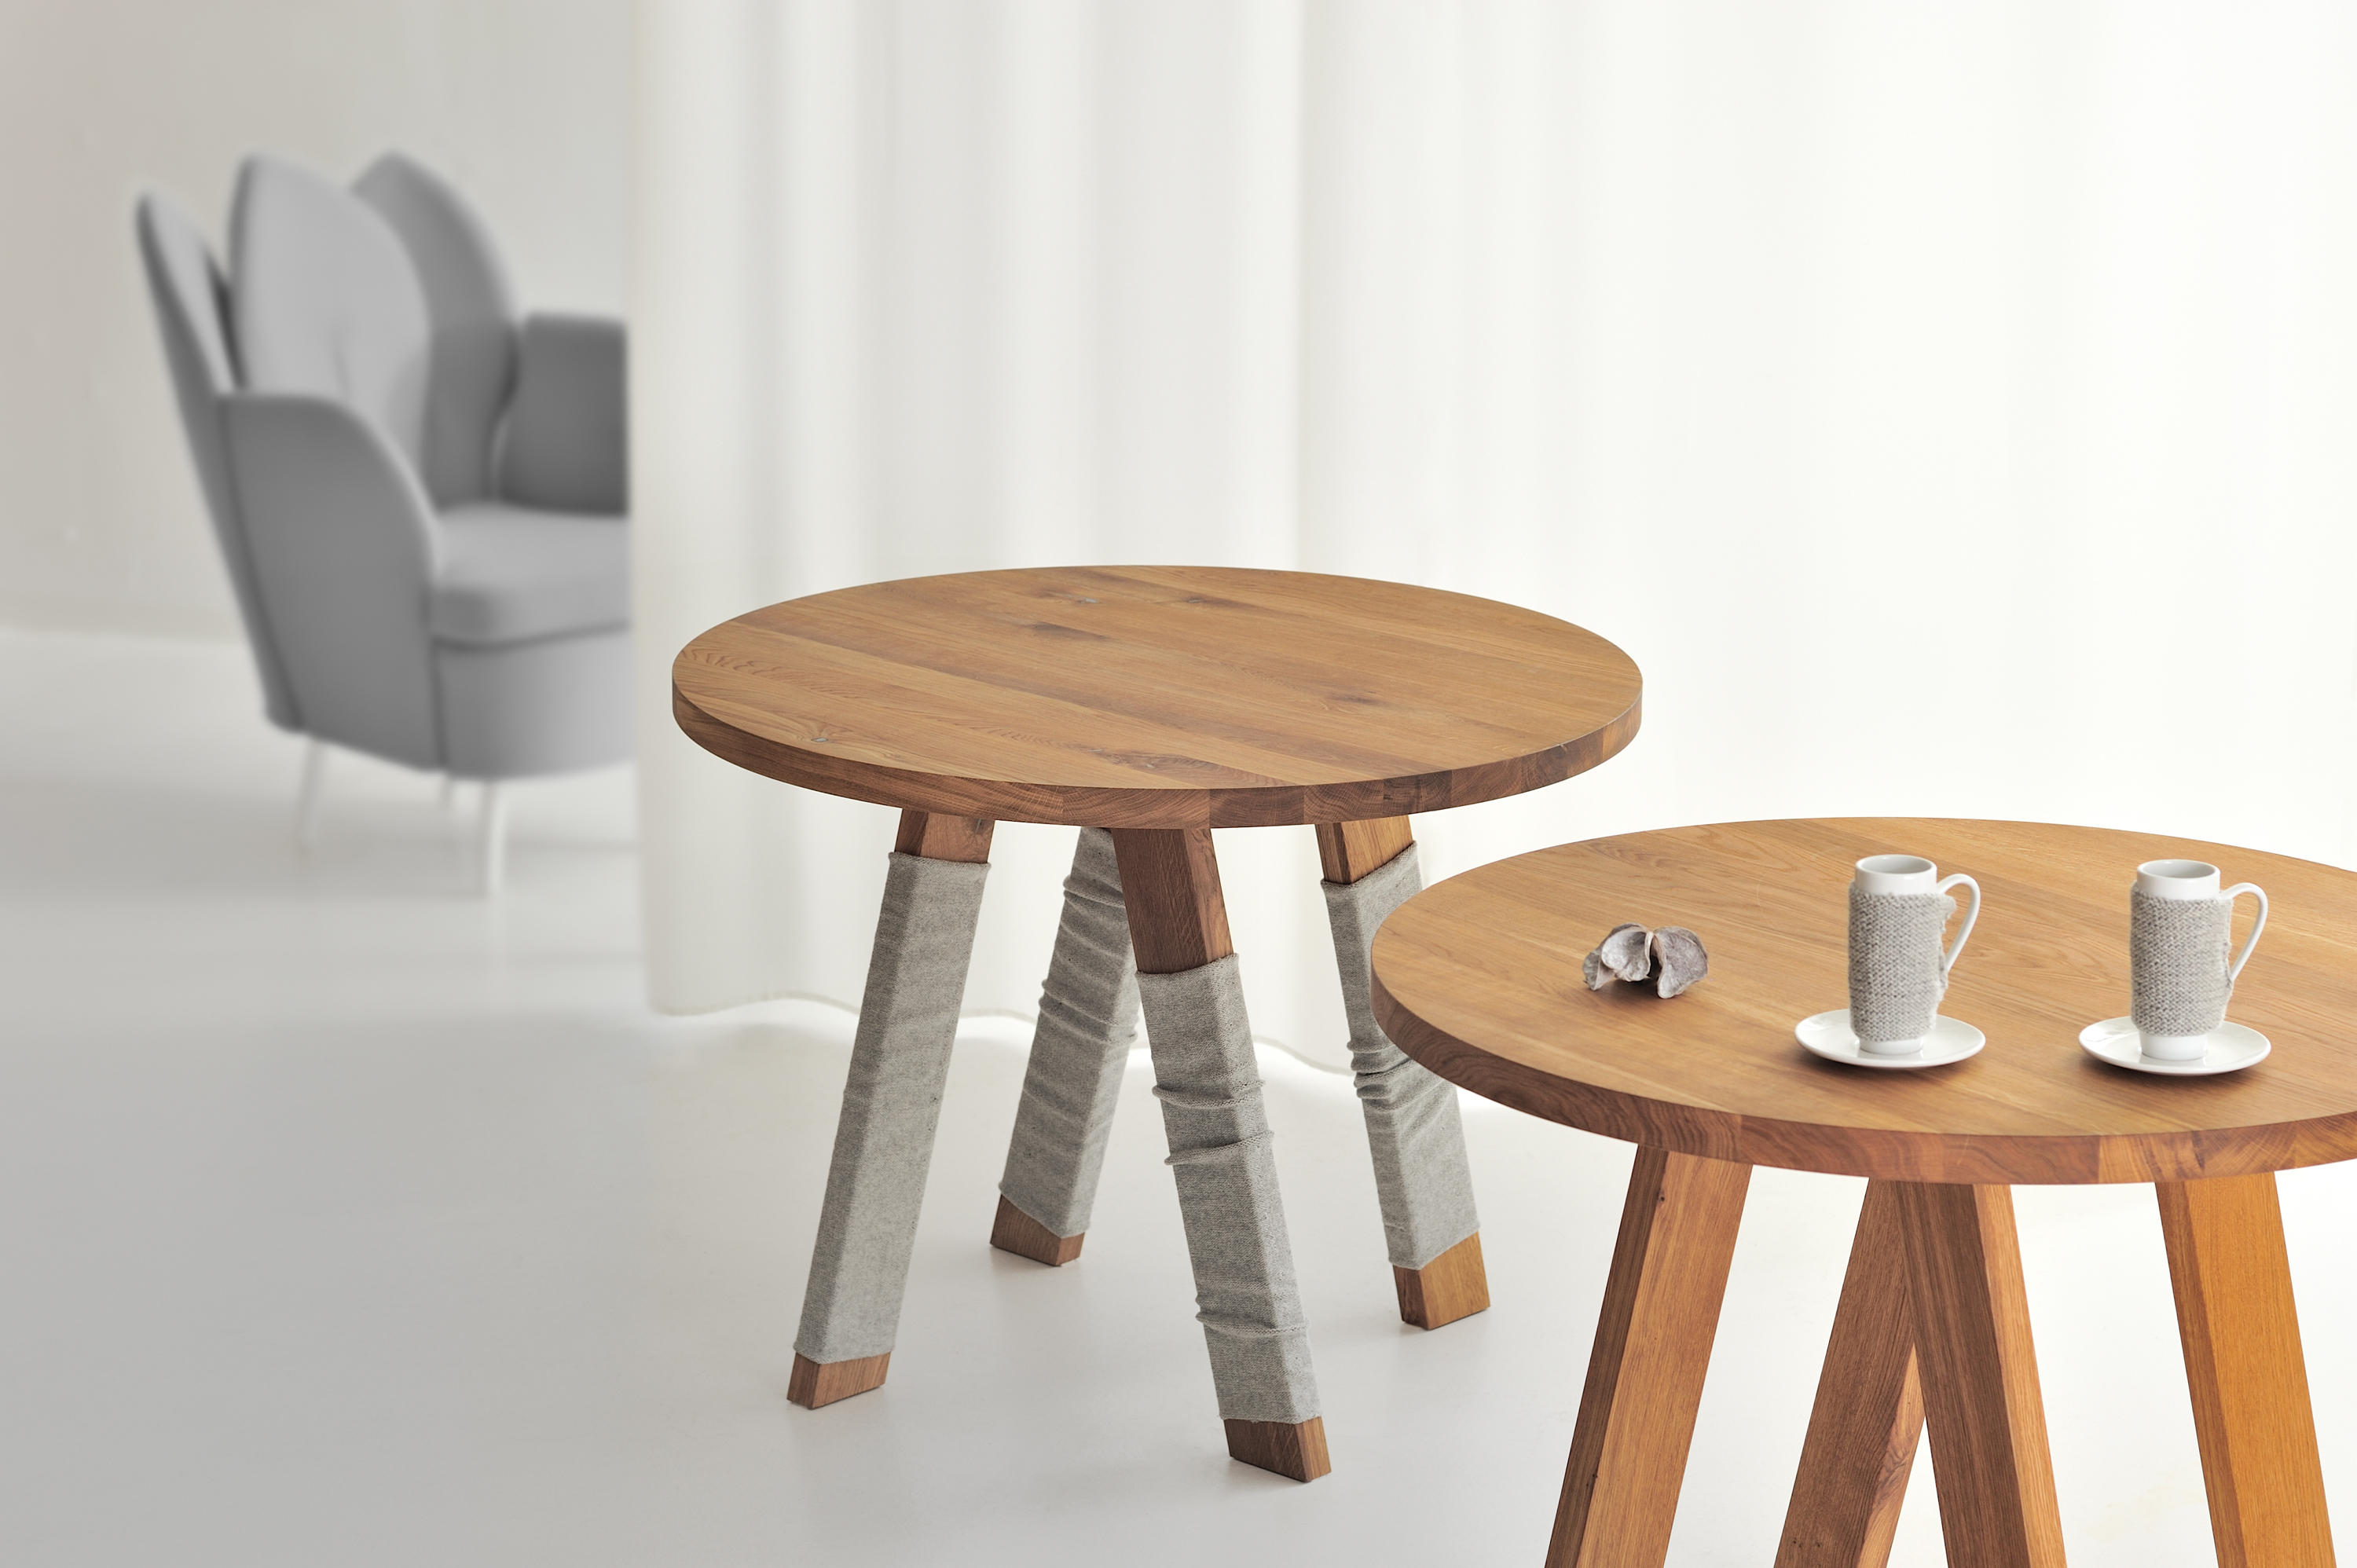 Zirkel table restaurant tables from vitamin design for Vitamin design tisch living